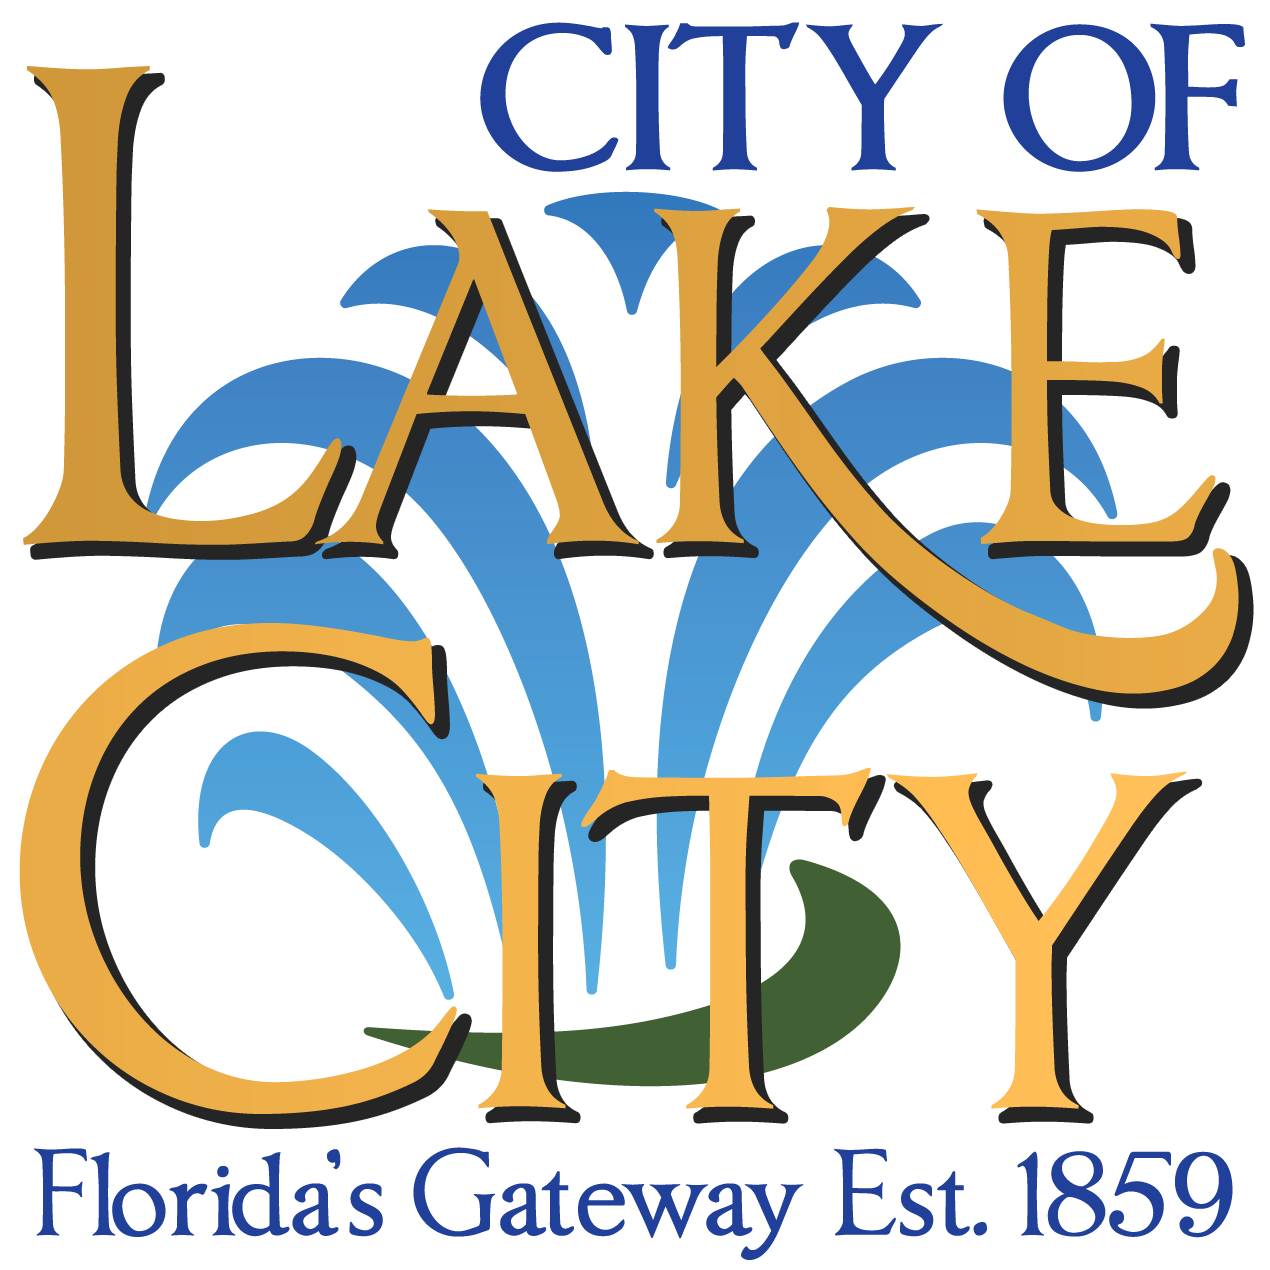 Lake City Fl Logo Square.png